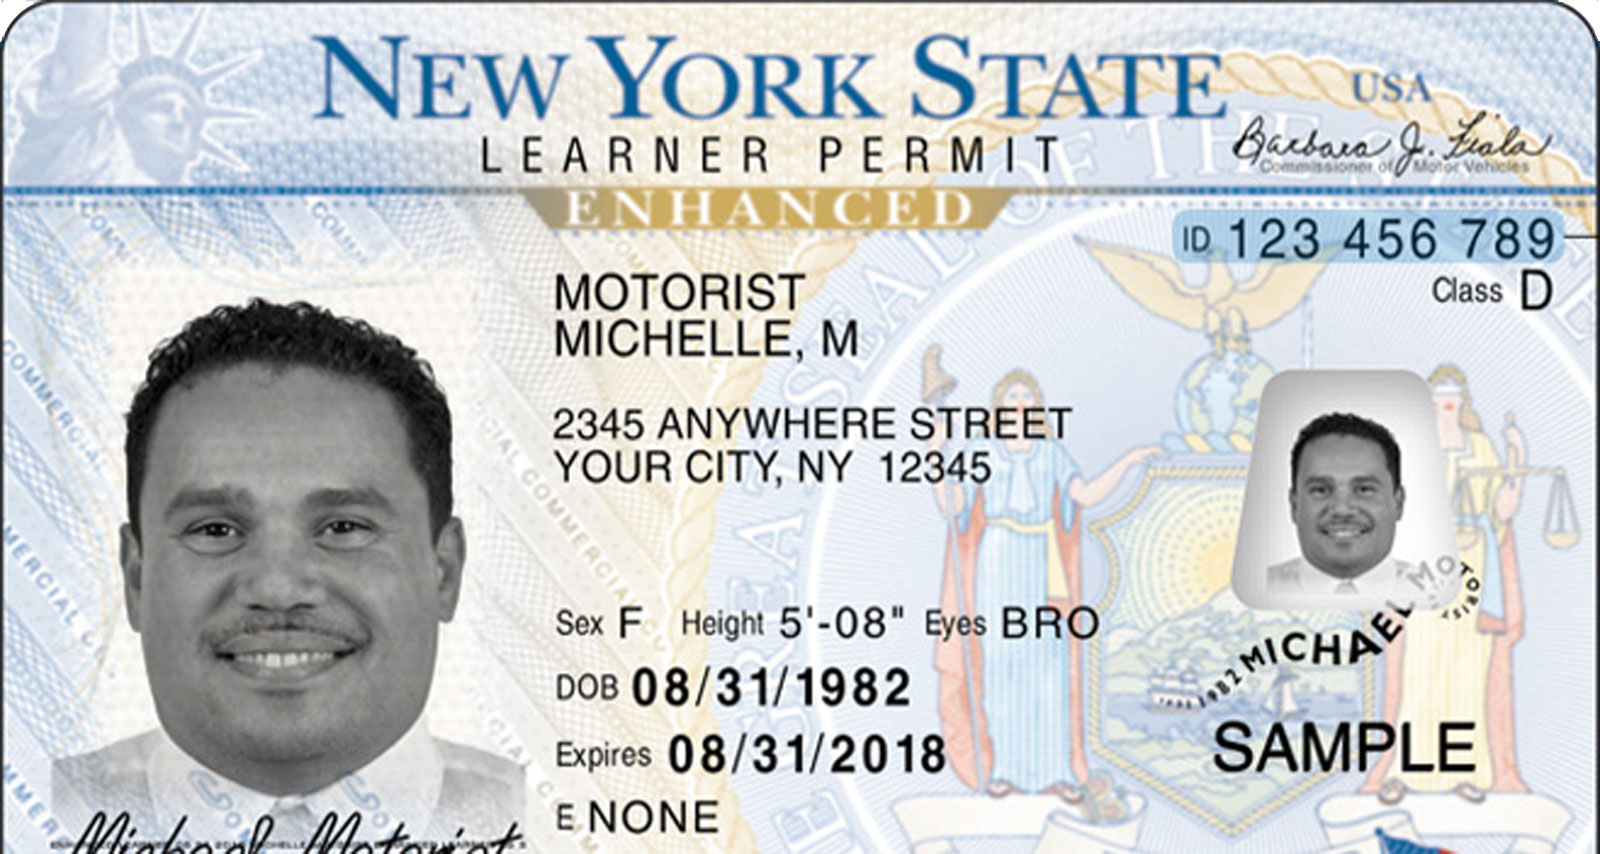 Lerner's NY was a CC that could be used at both Lerner's and New York and Company stores. Since they are no longer sister companies, you cannot use the card at both stores. The card is now New York .